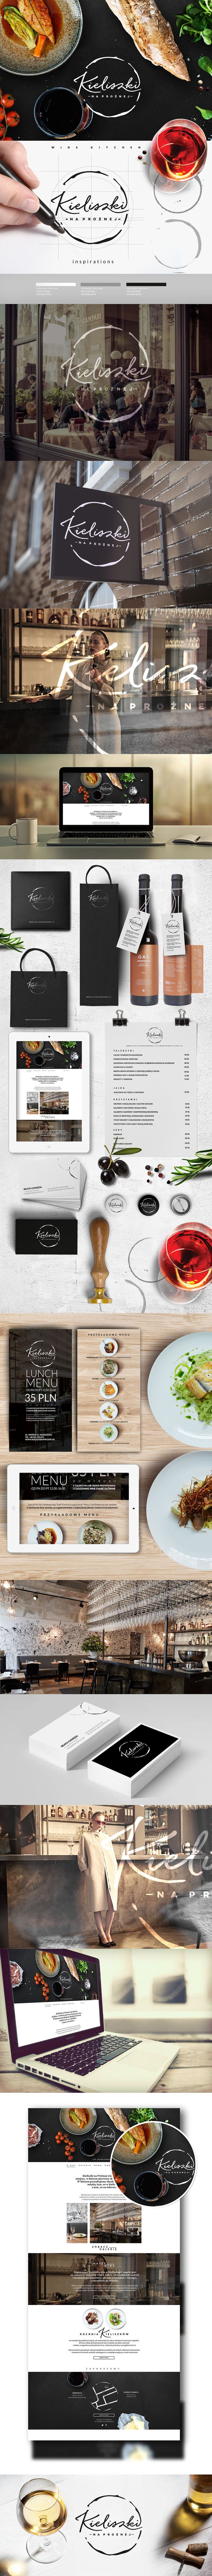 Kieliszki - restaurant on Behance